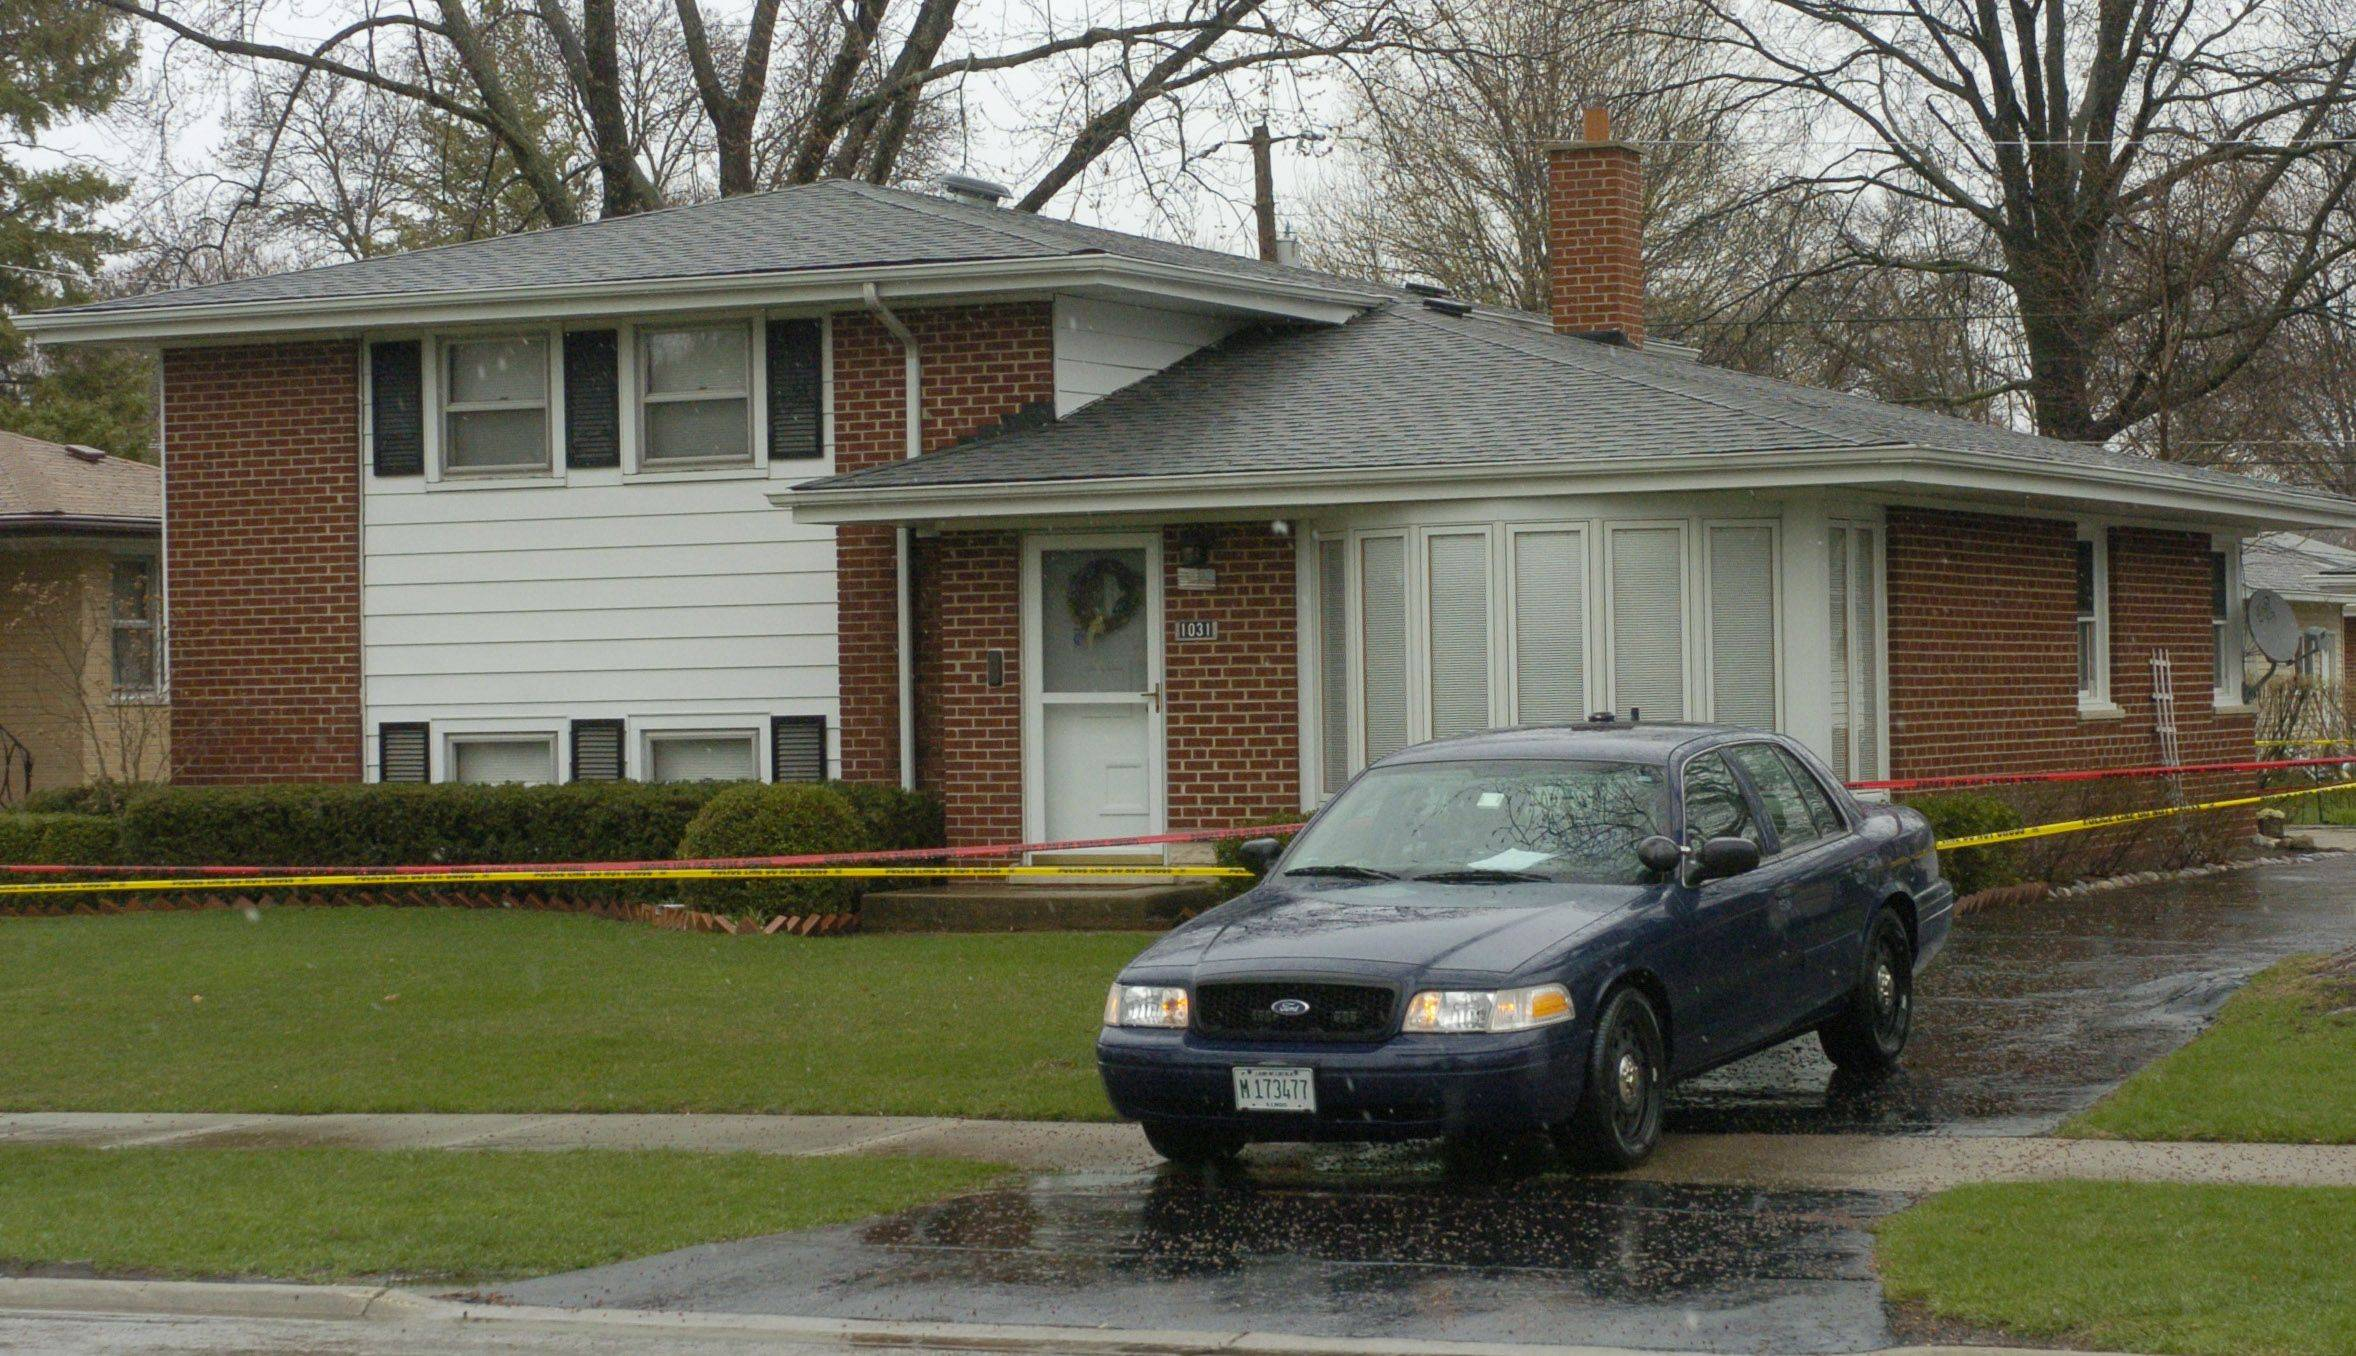 A 55-year-old Arlington Heights man was killed in his home last week by four men, including his own son, who had hatched a plot top rob him, according to charges announced by police early Sunday morning.